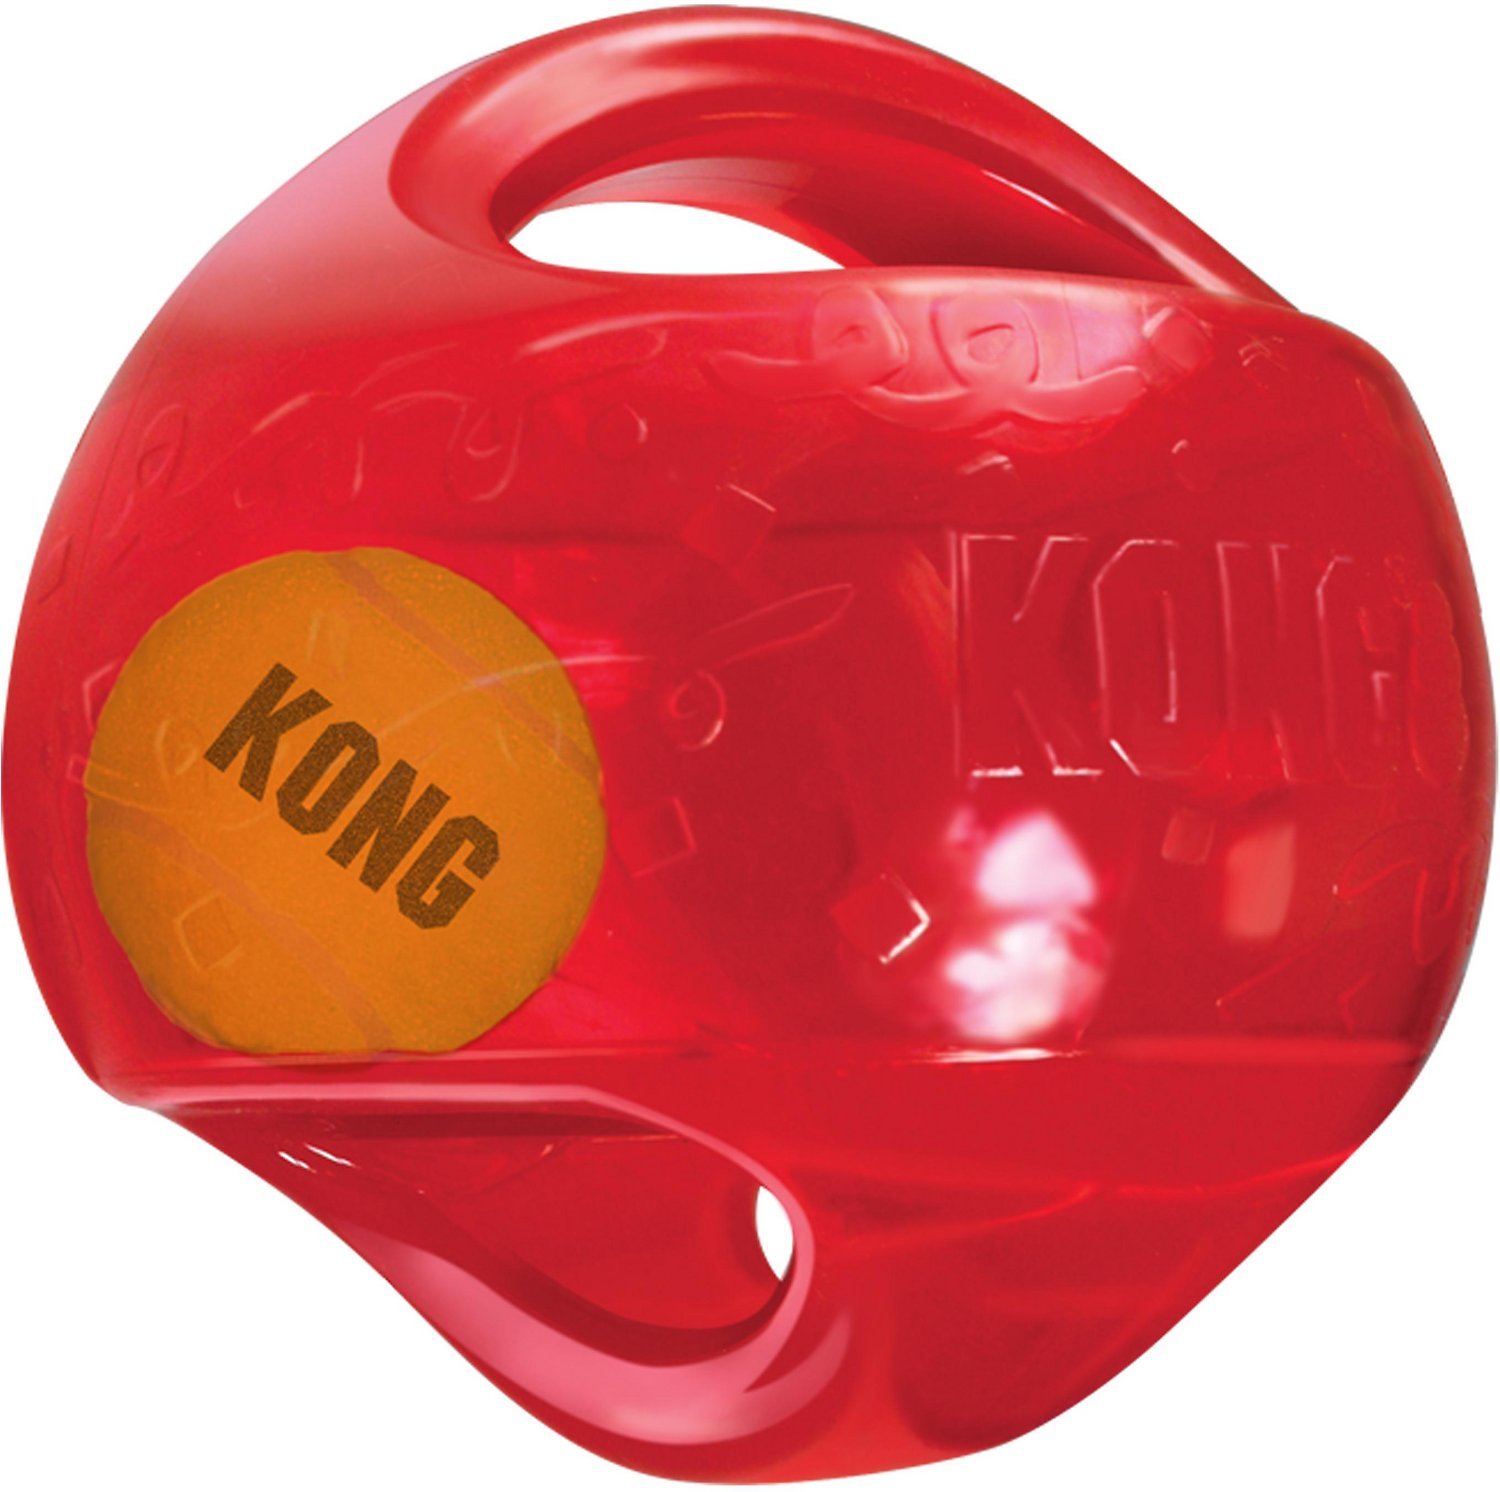 Dog Toys Balls : Kong jumbler ball dog toy color varies large